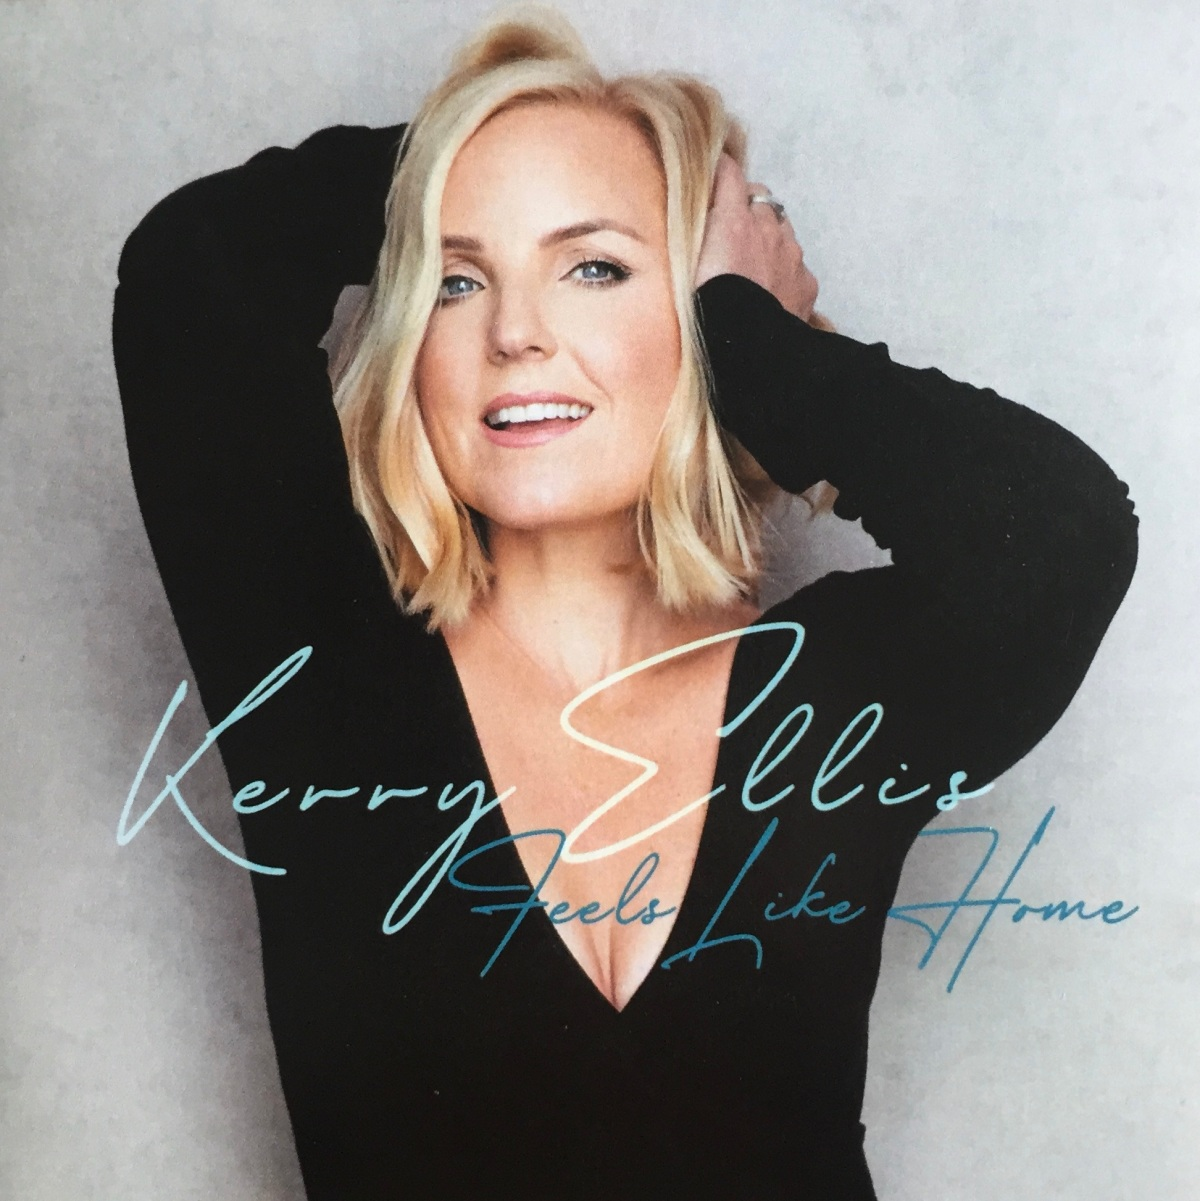 Kerry Ellis Review – Feels Like Home